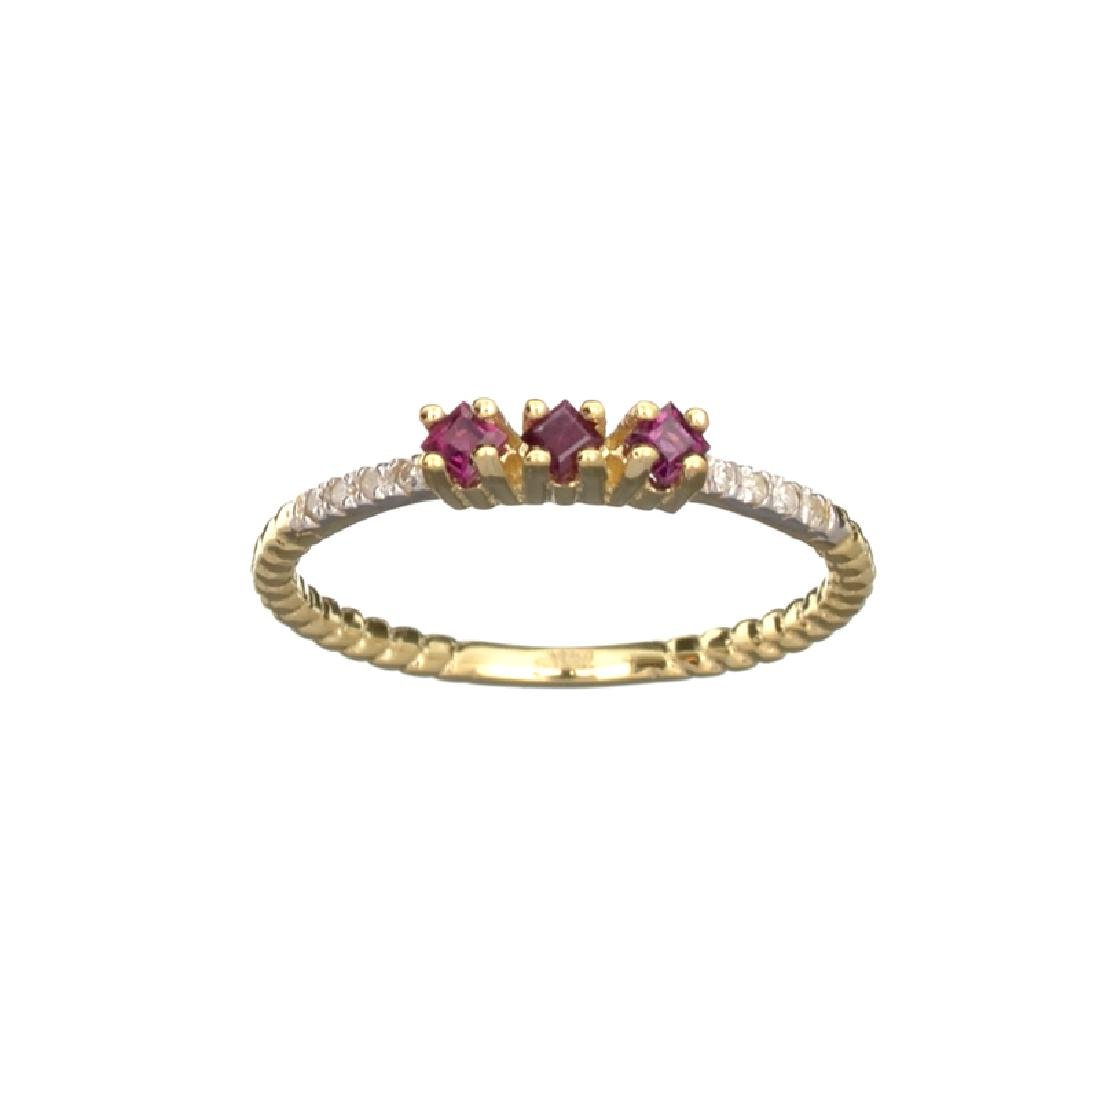 APP: 0.5k Fine Jewelry 14KT Gold, 0.19CT Red Ruby And